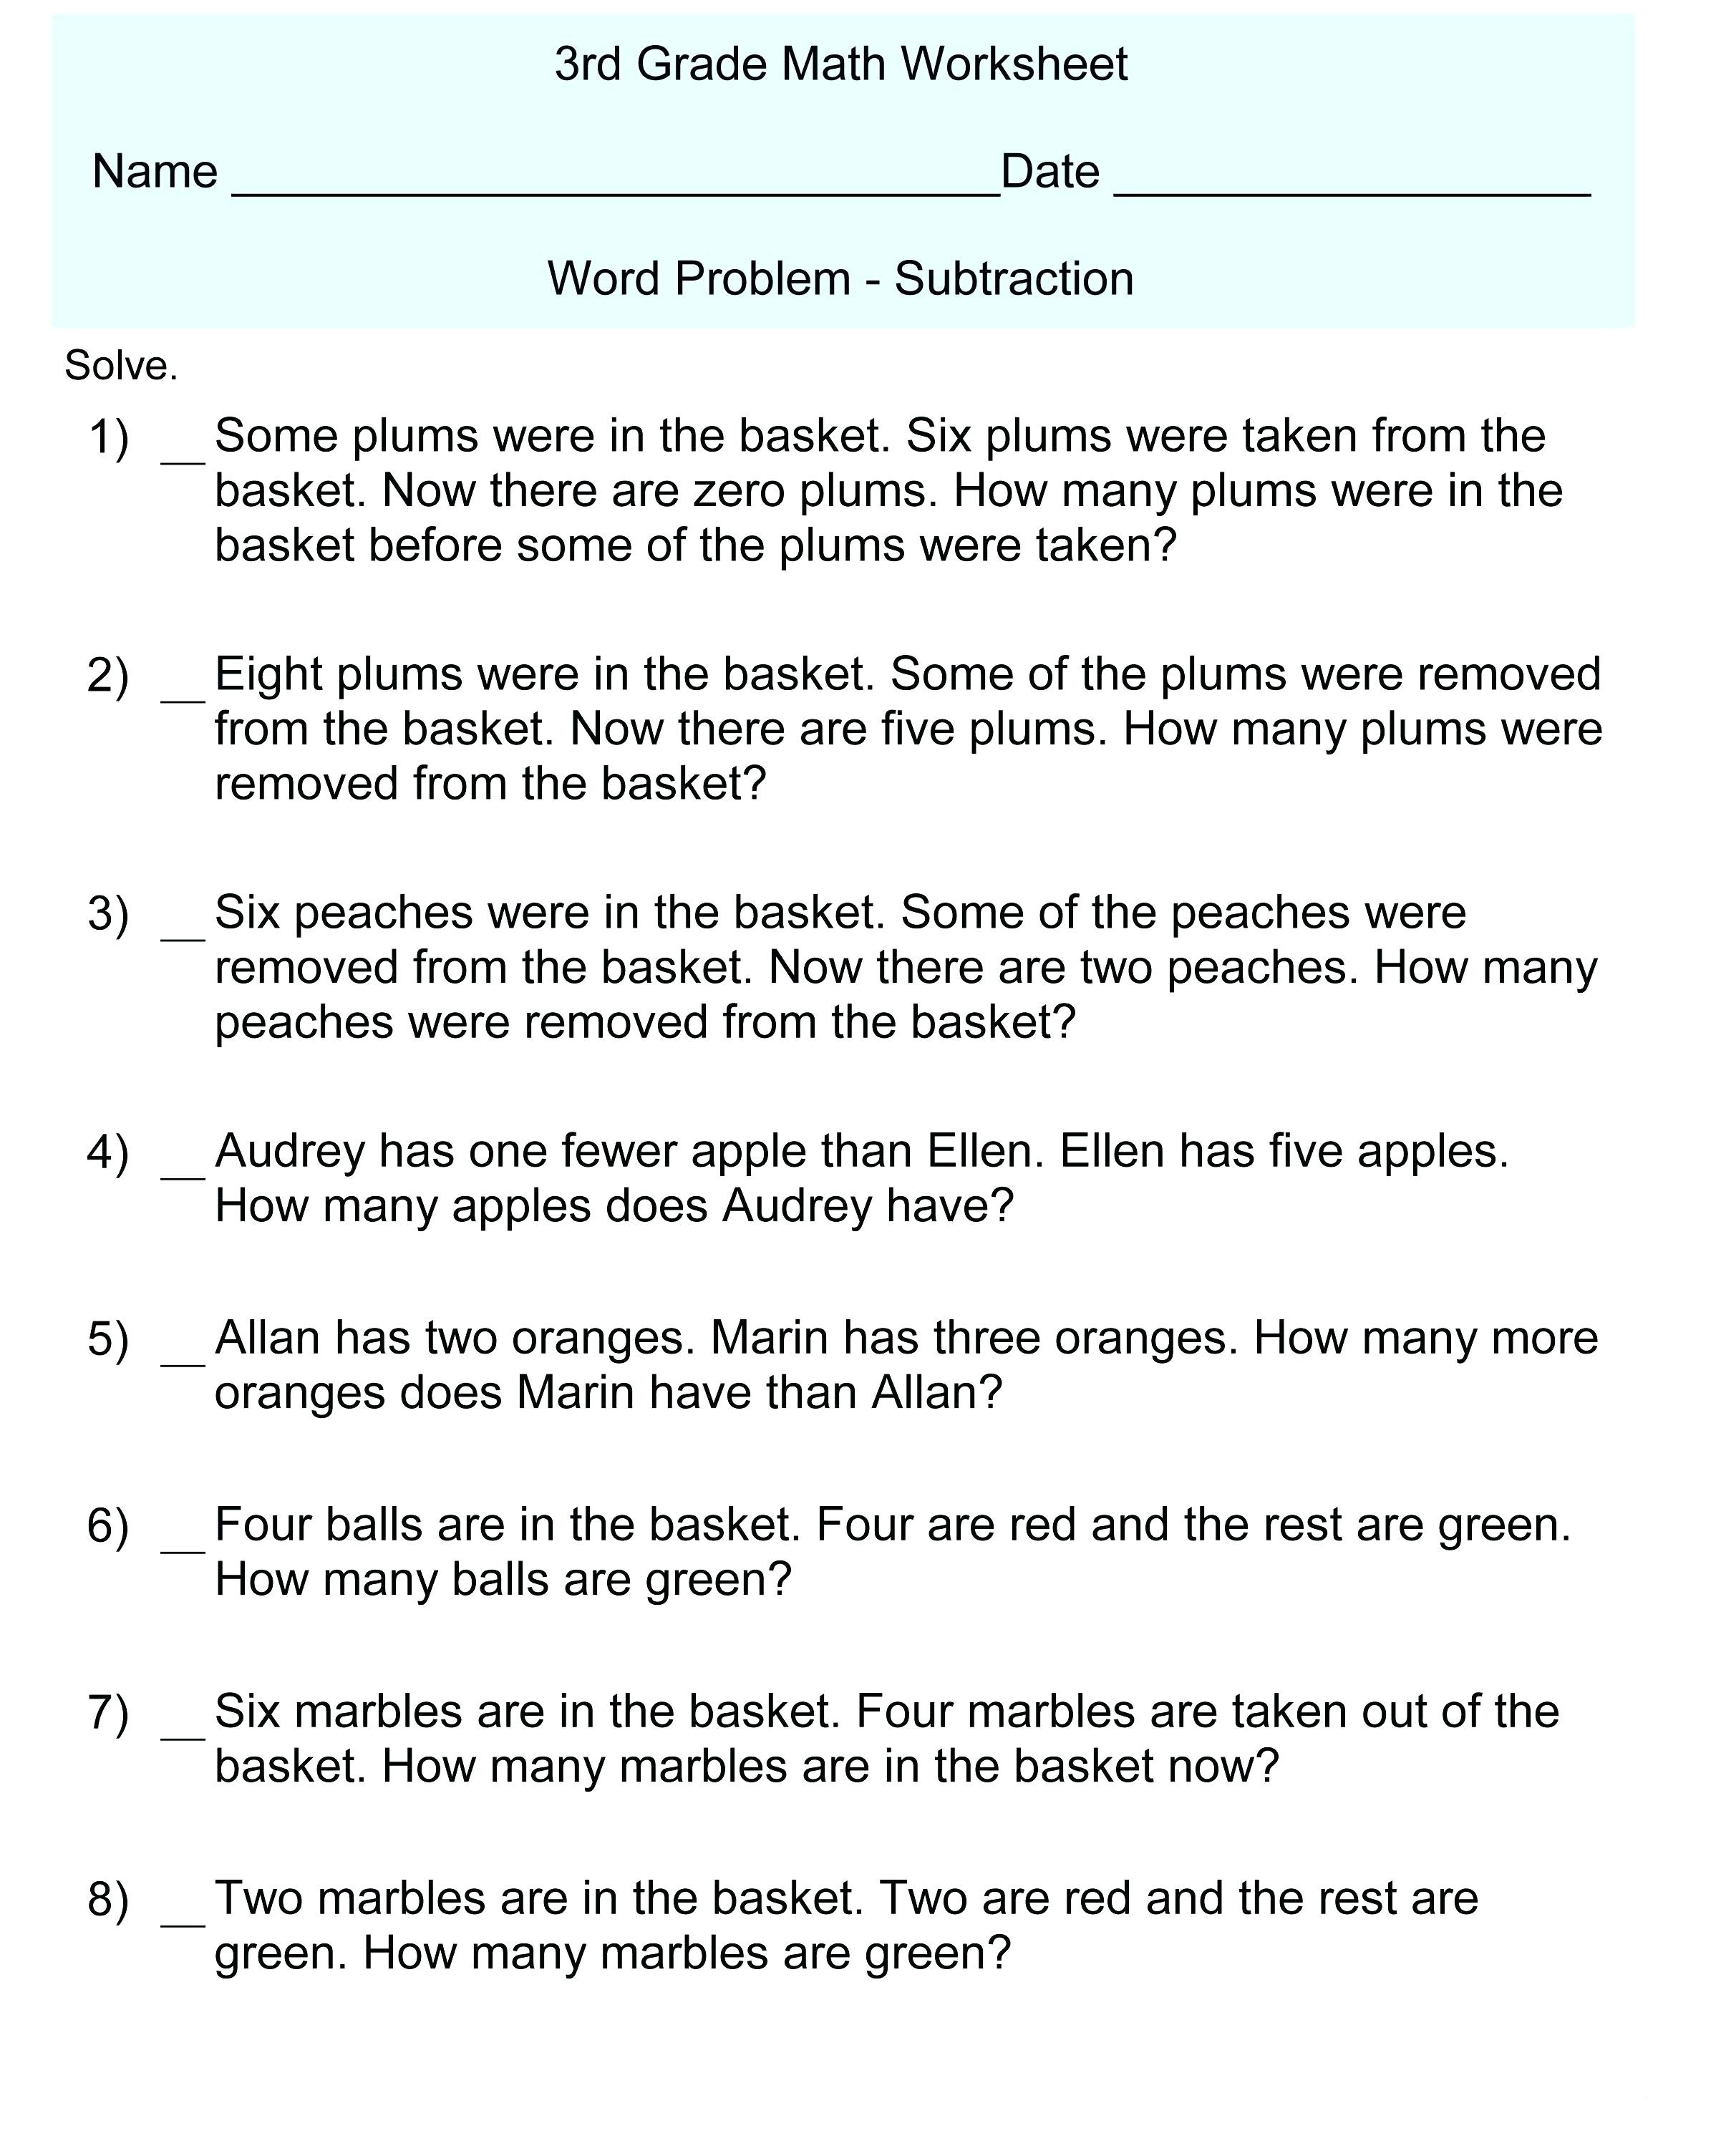 3rd Grade Math Equations Worksheets